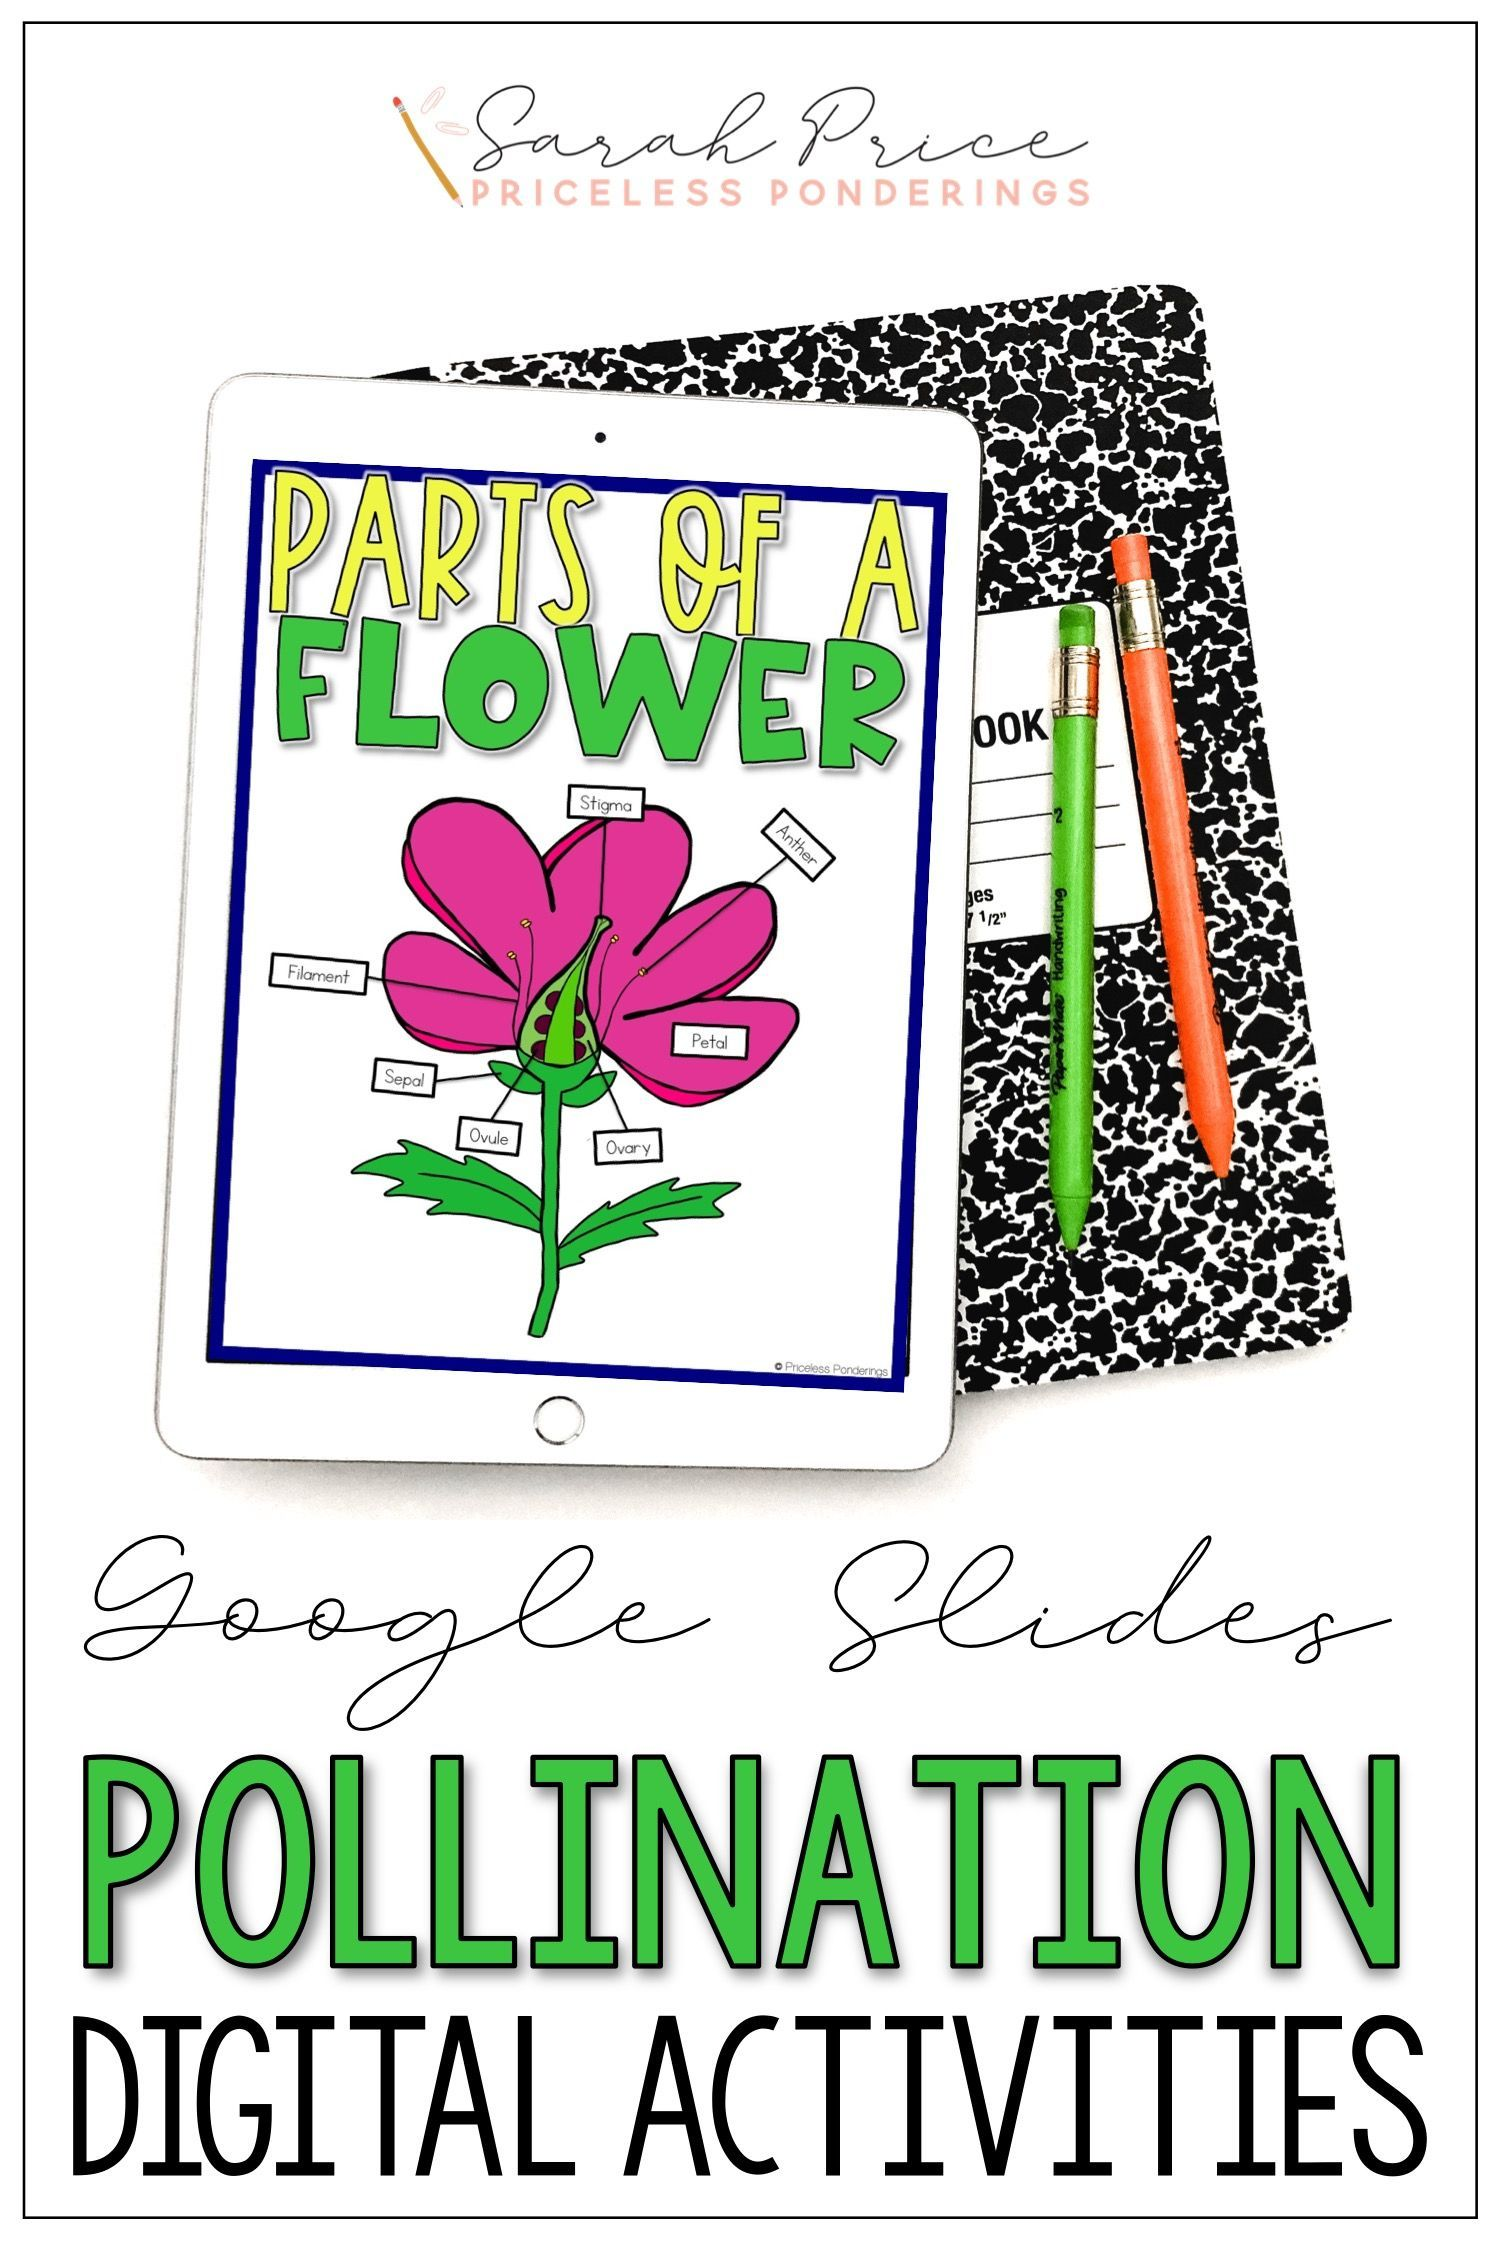 Pollination Activities Slides